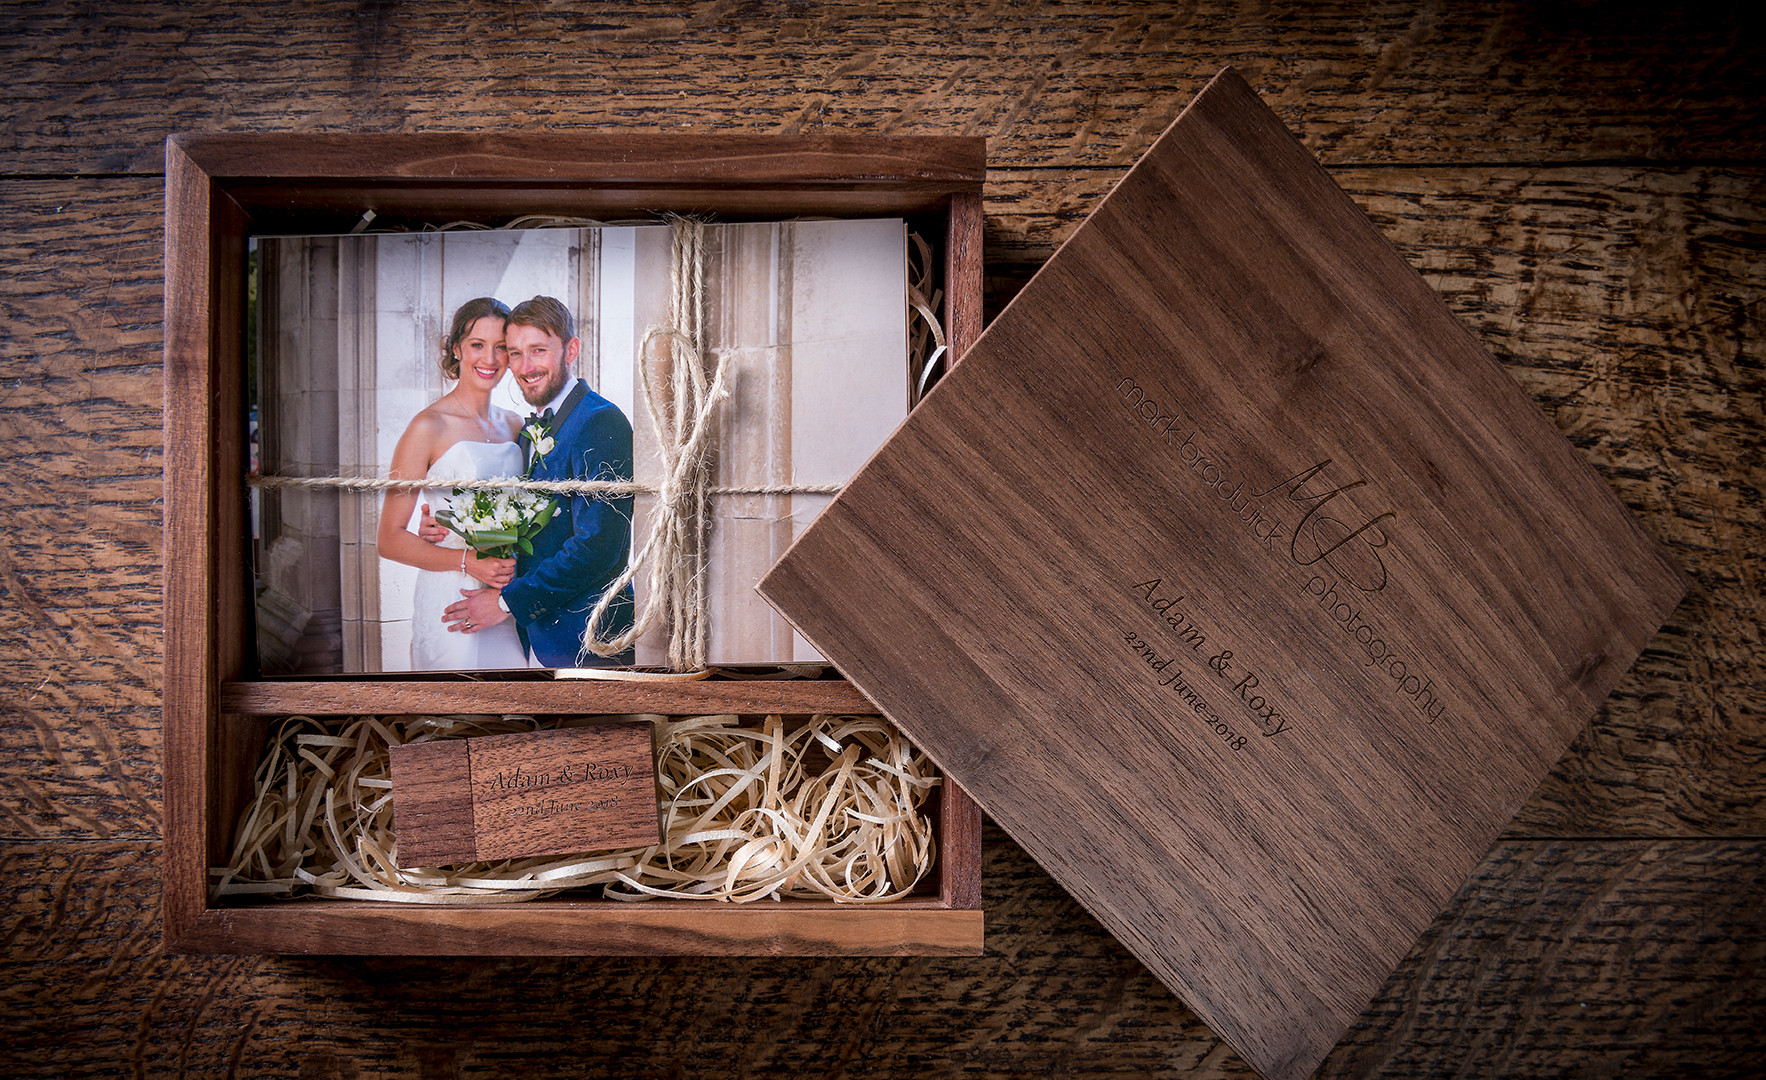 Presentation Box for Wedding Photography